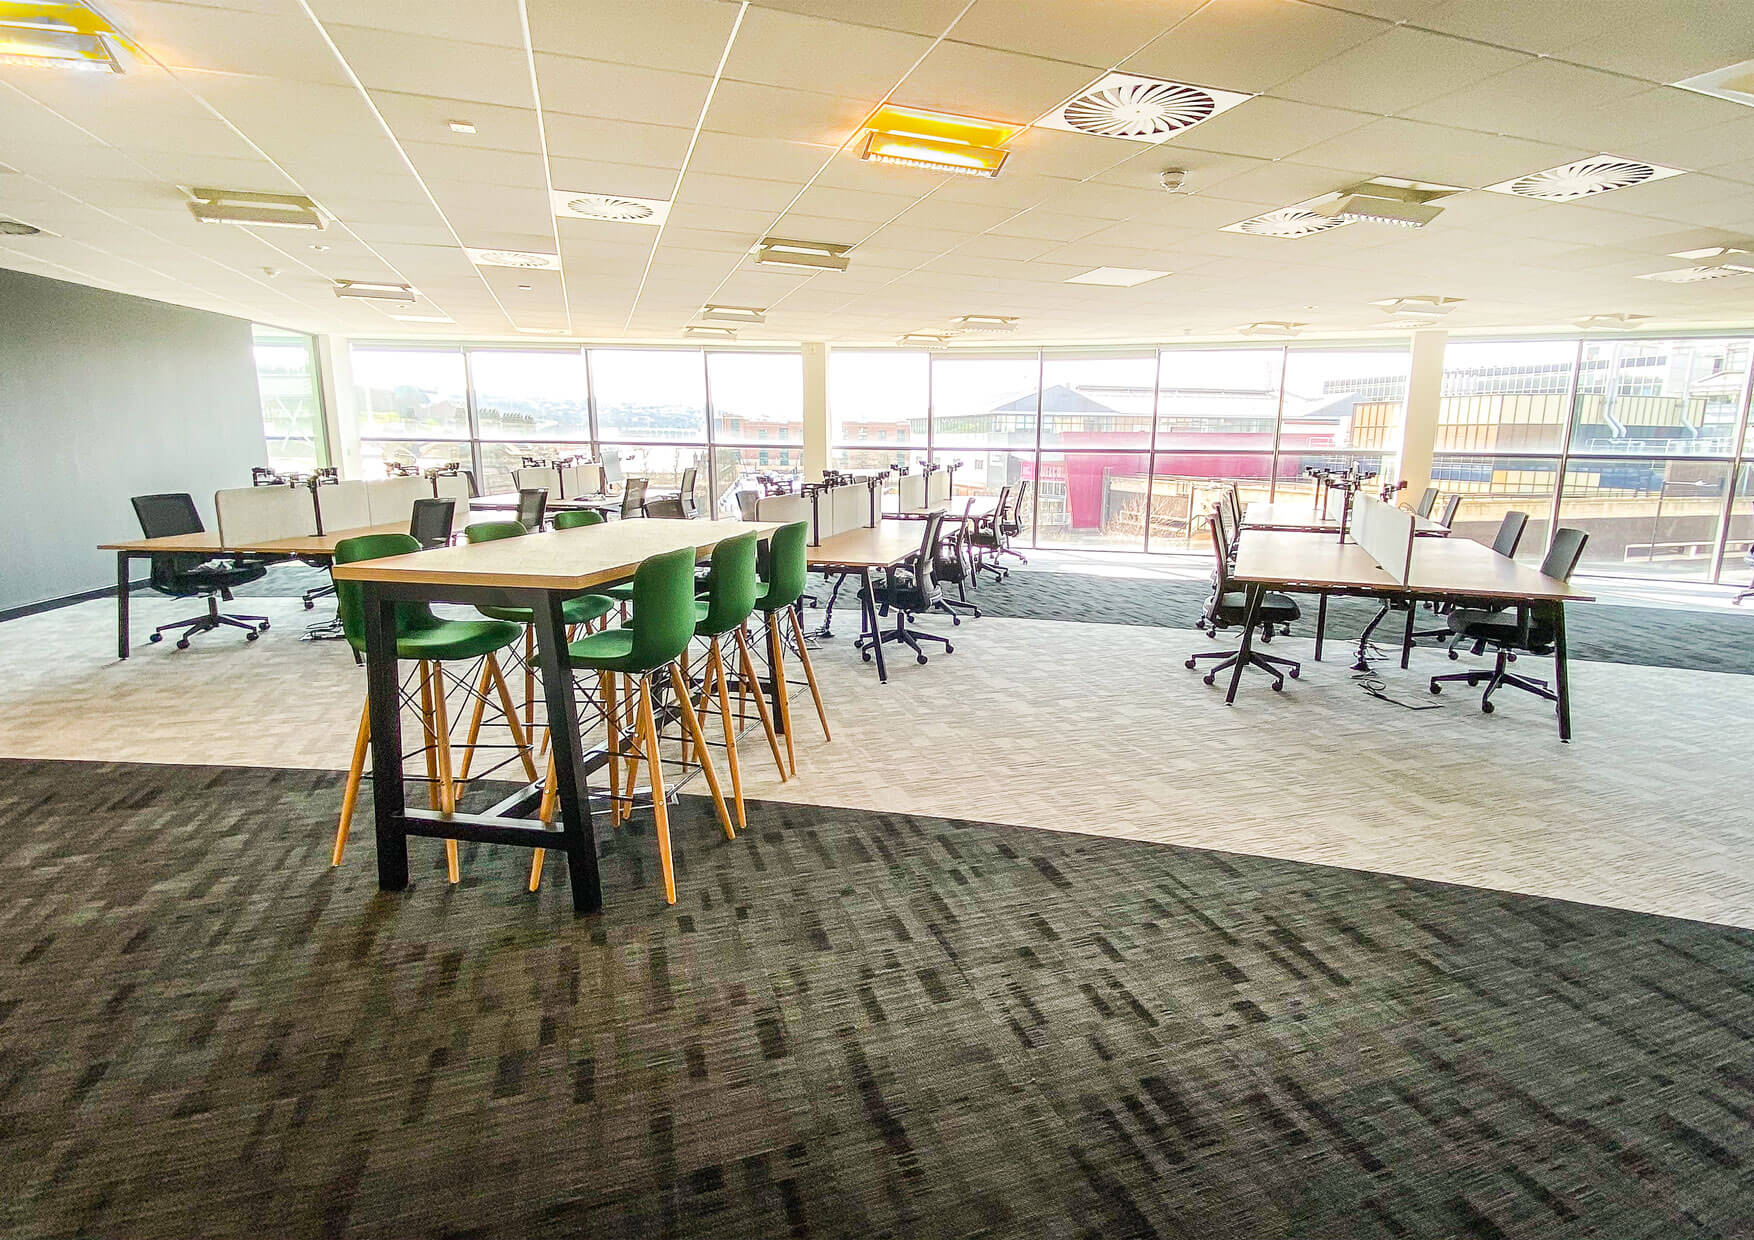 Curvalux open plan office fitout Yorkshire